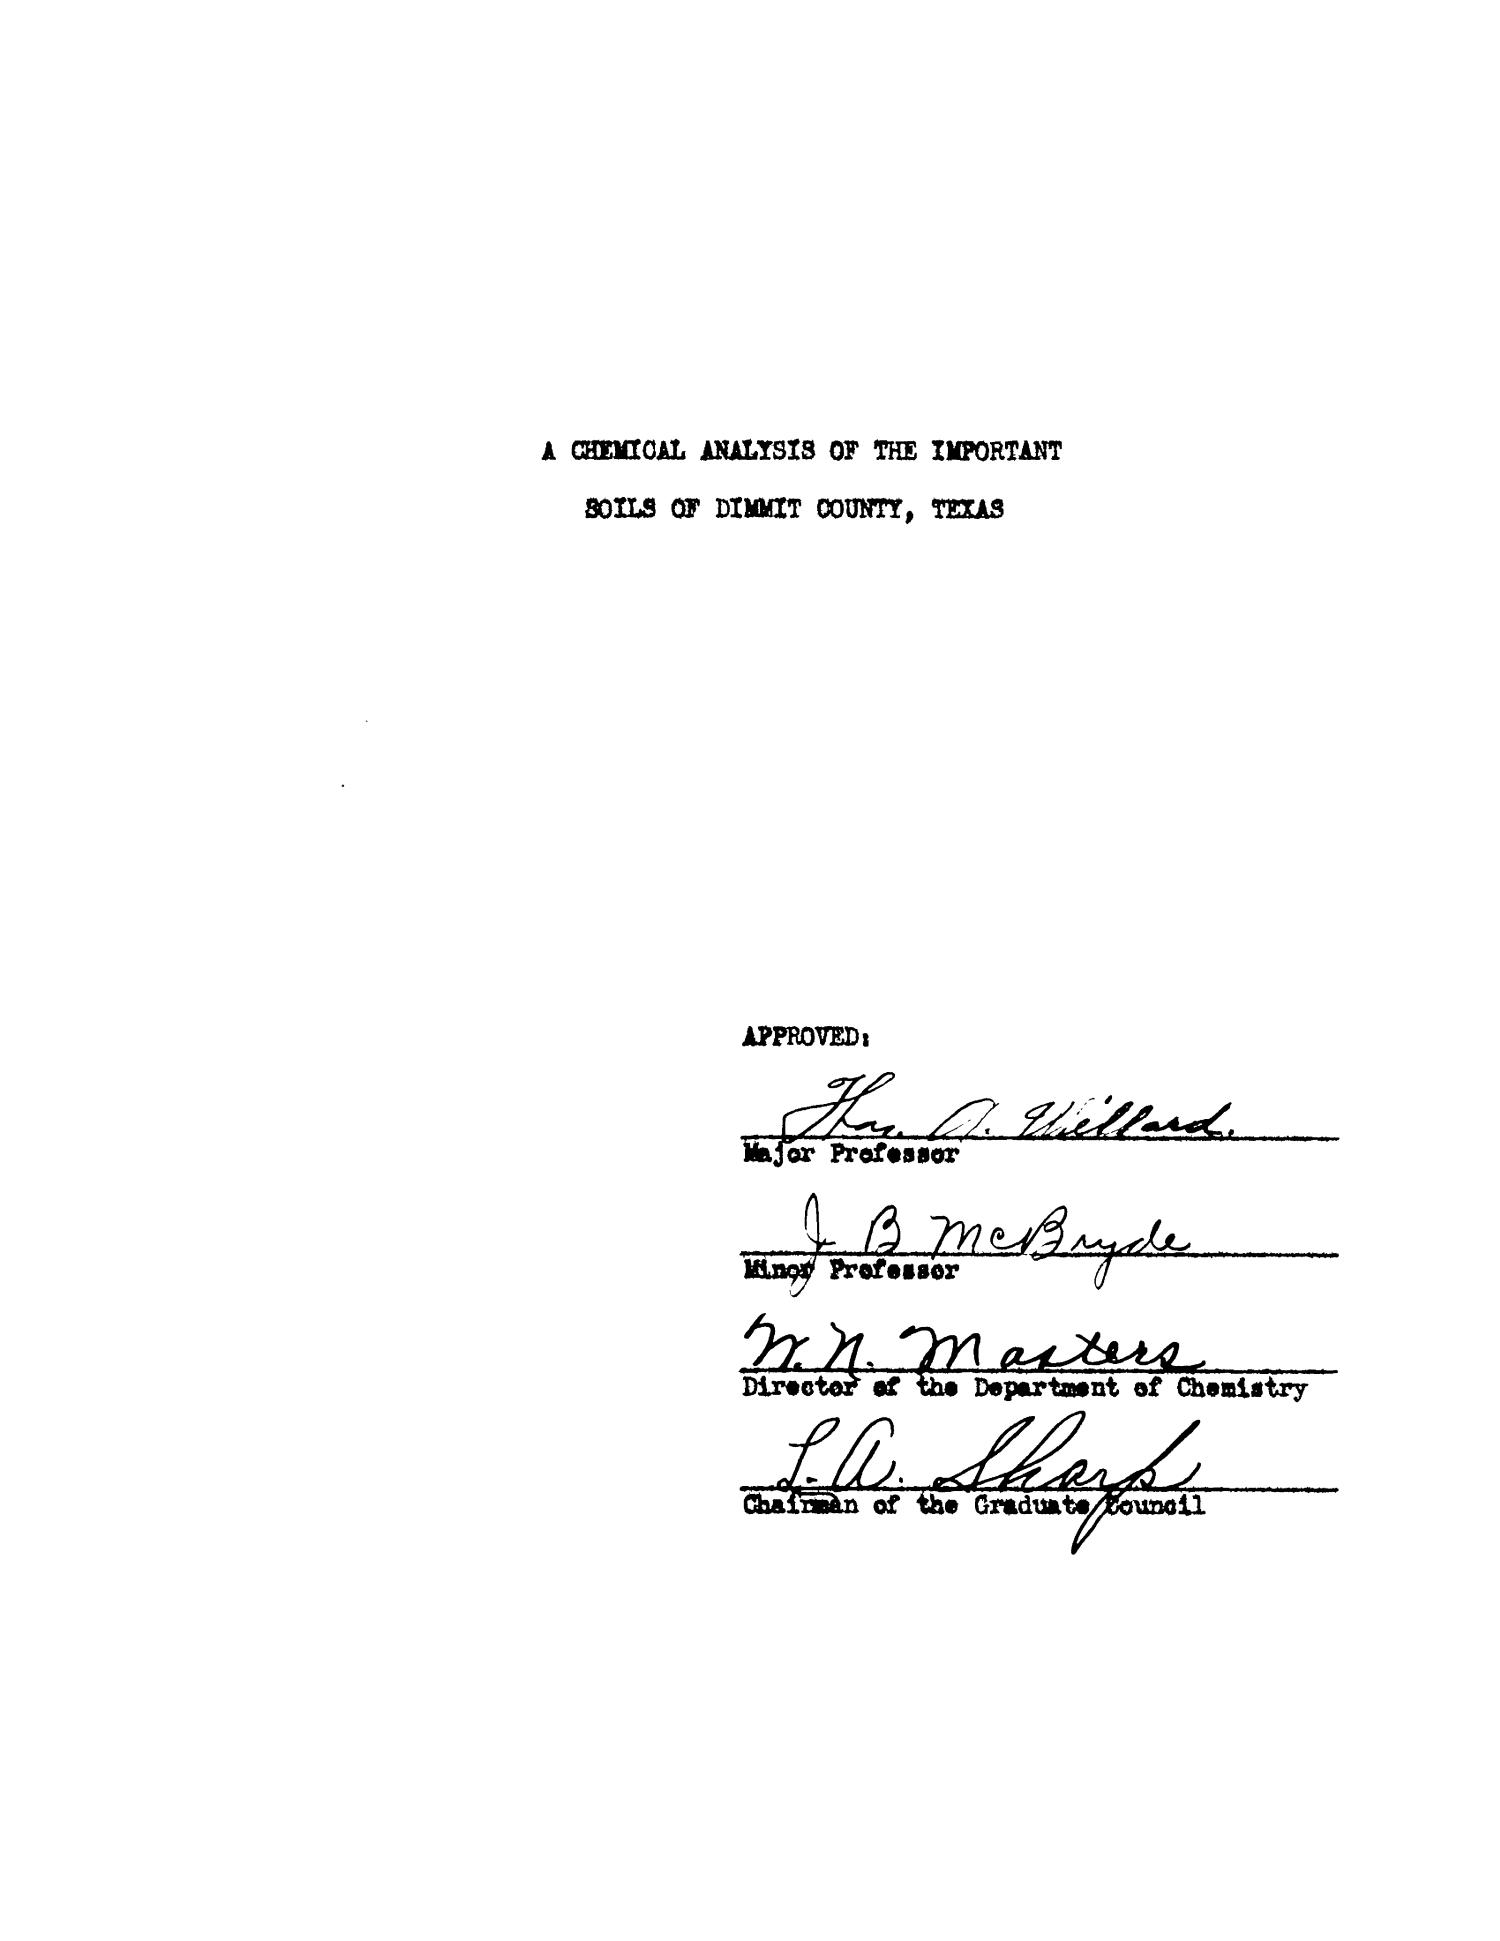 A Chemical Analysis of the Important Soils of Dimmit County, Texas                                                                                                      Title Page